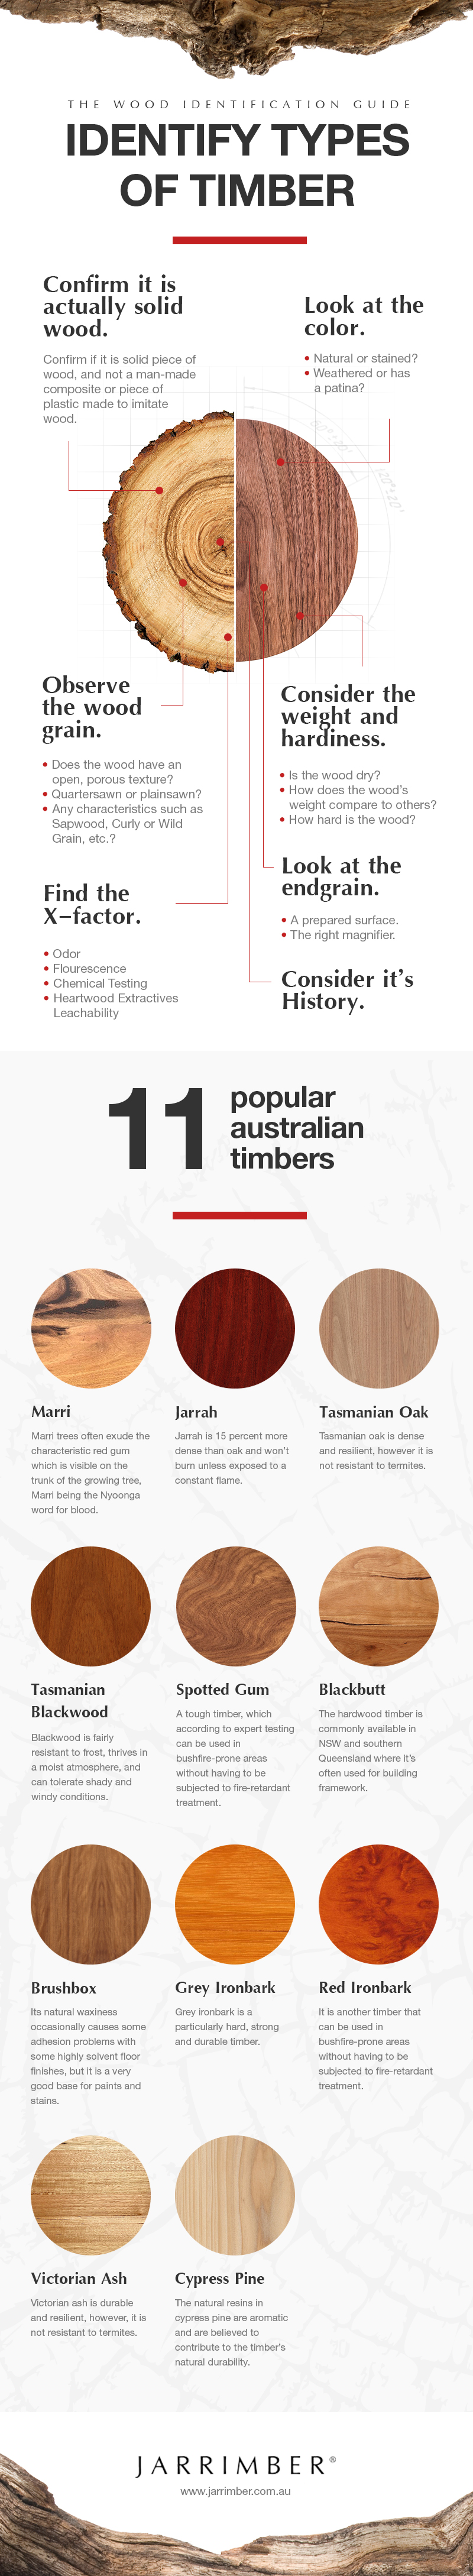 Timber Identification Guide - Jarrimber